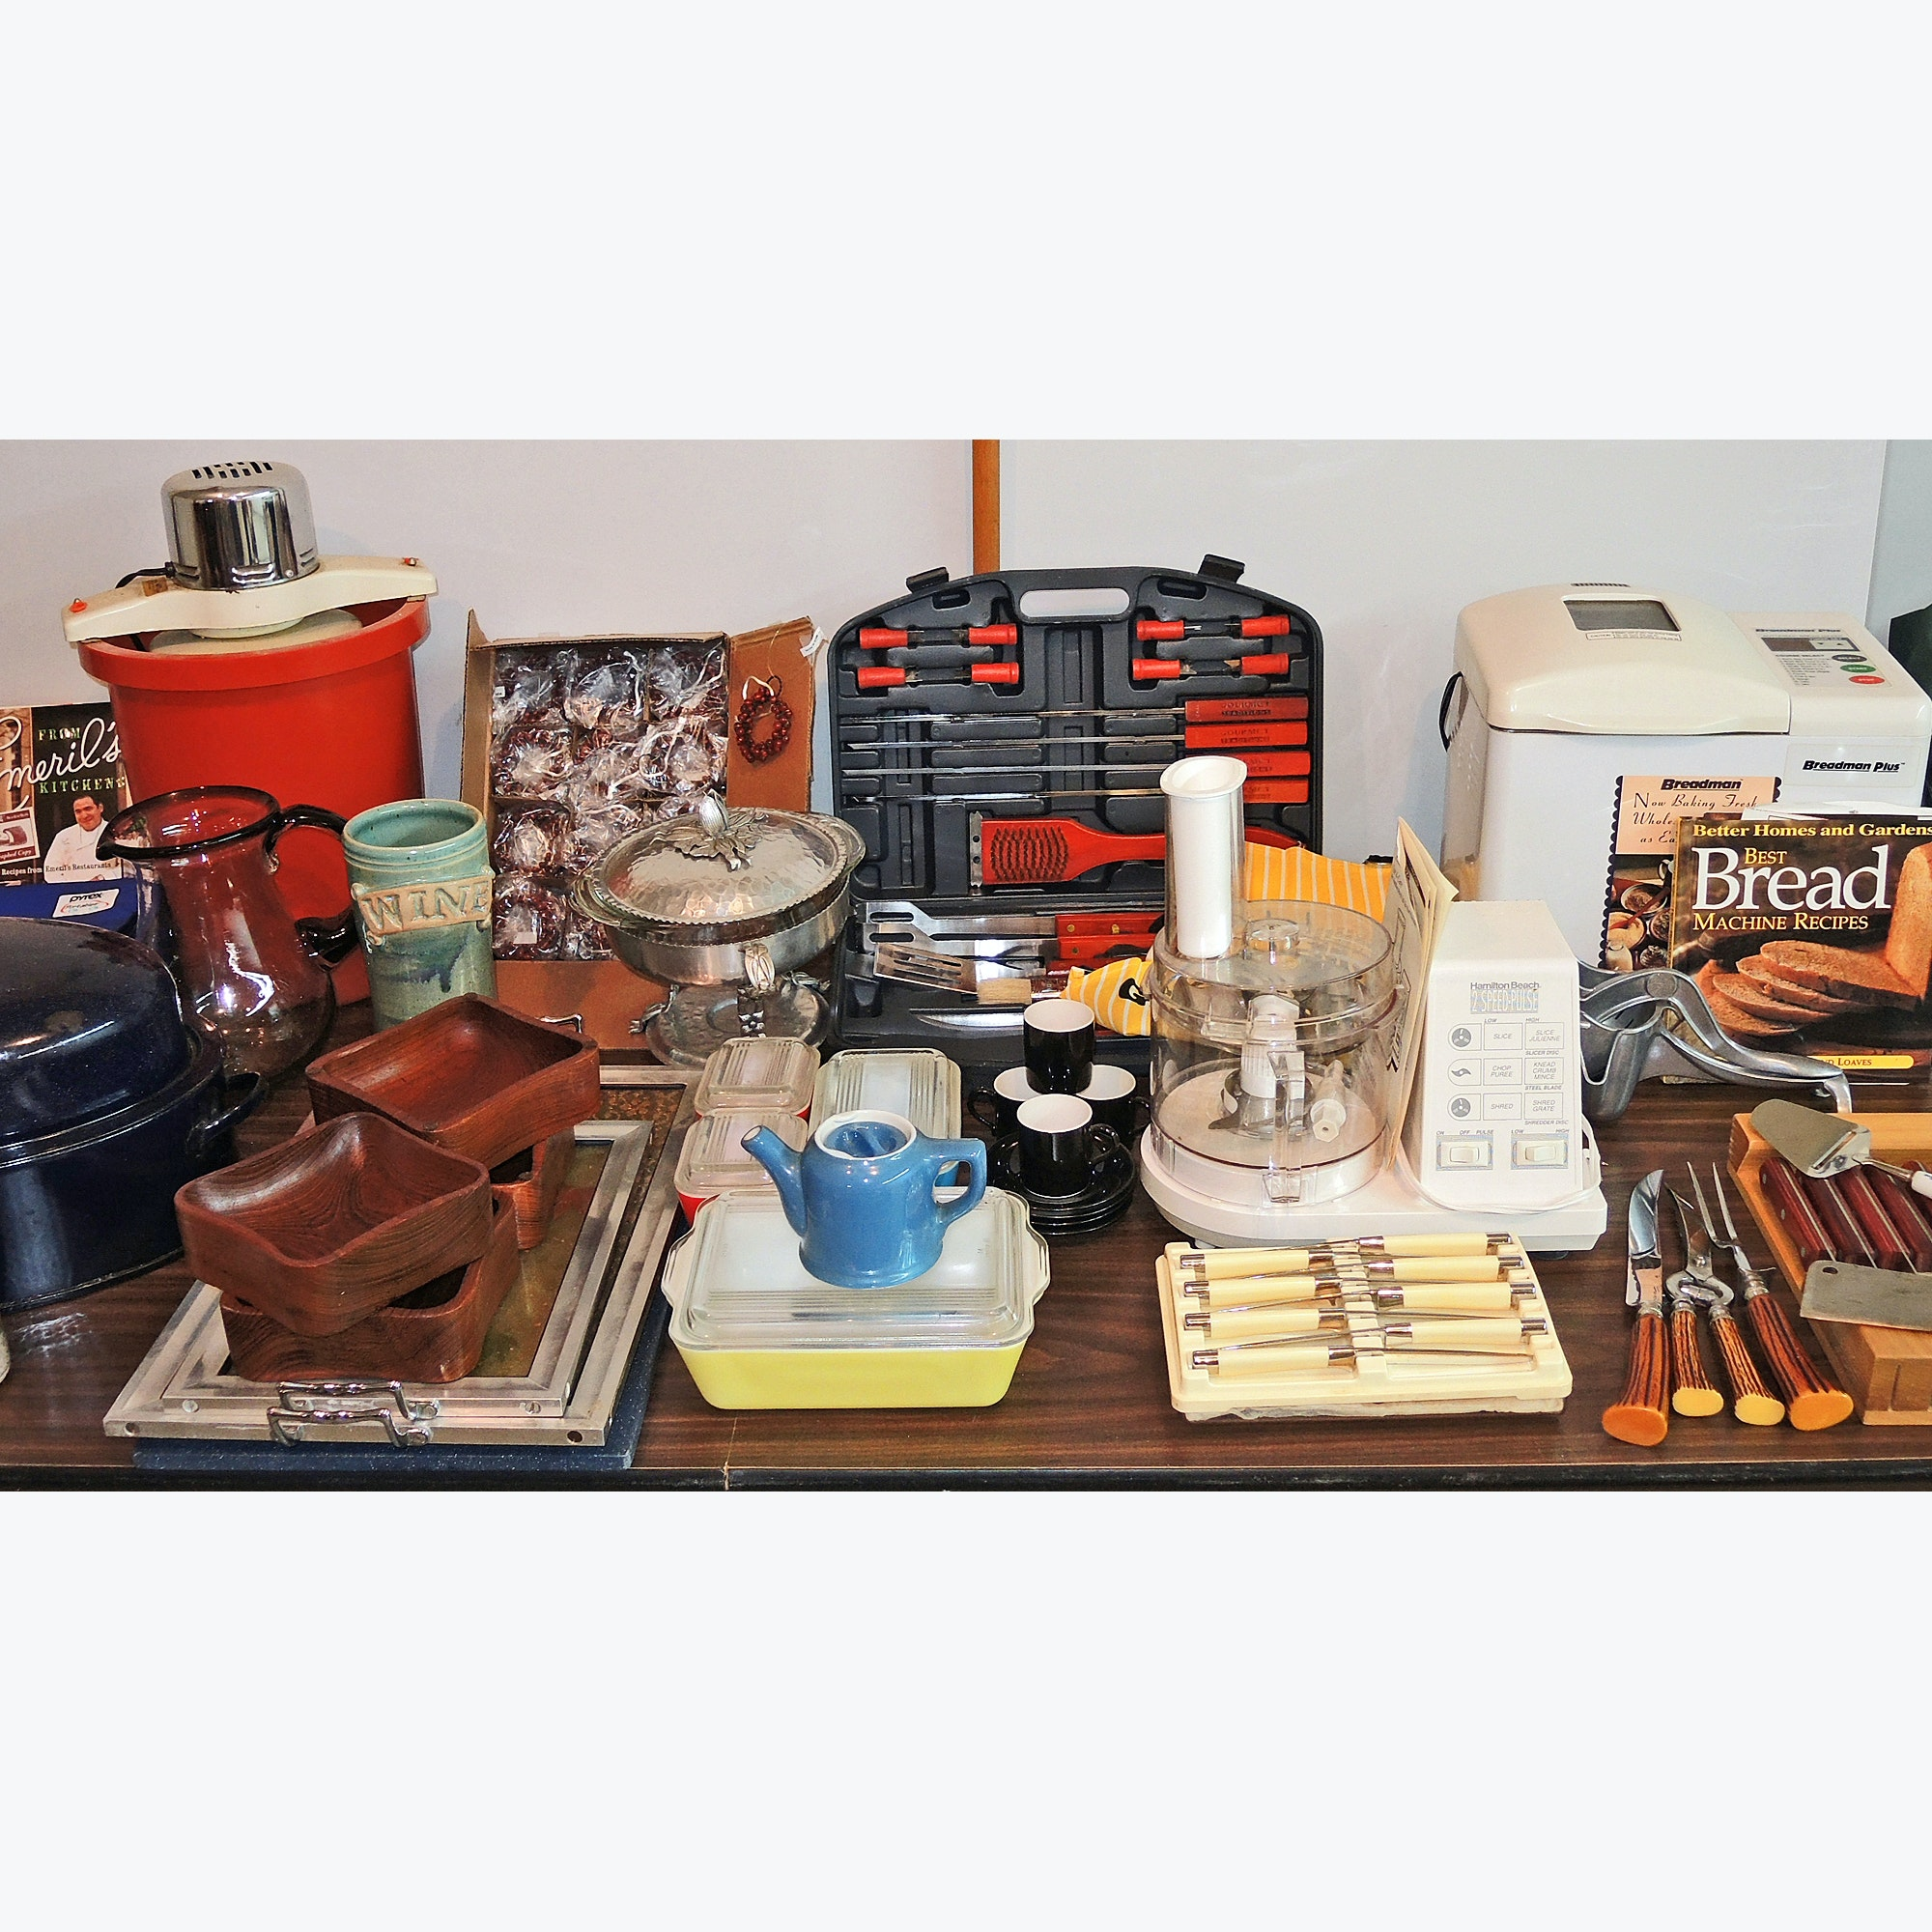 Kitchen Cookware, Grill Tools, Dishes, Knives and Appliances Collection